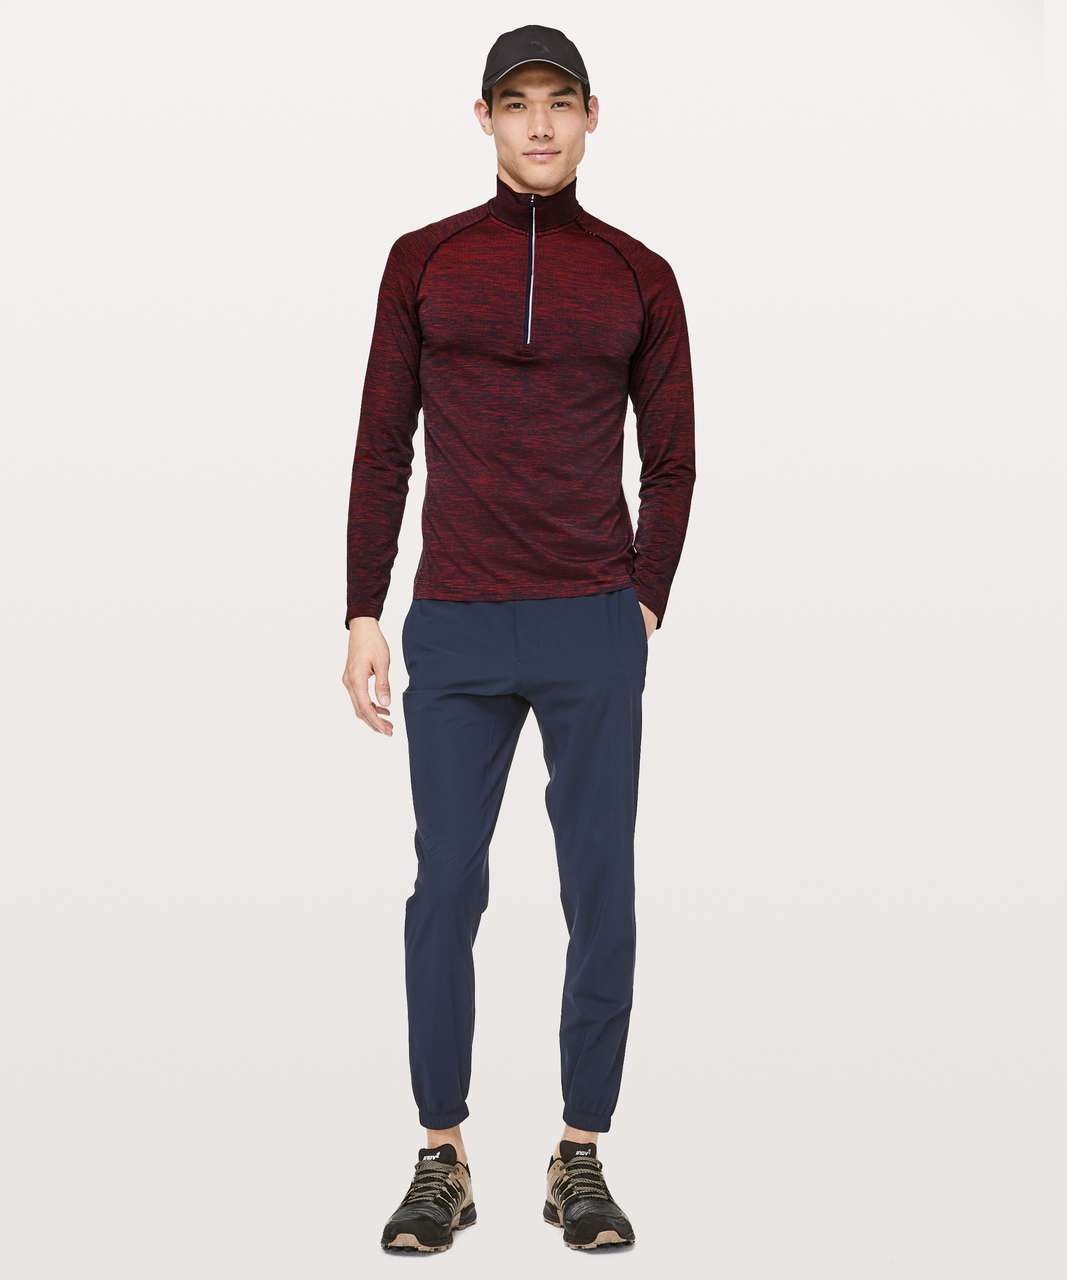 Lululemon Metal Vent Tech 1/2 Zip - Spicy Red / True Navy